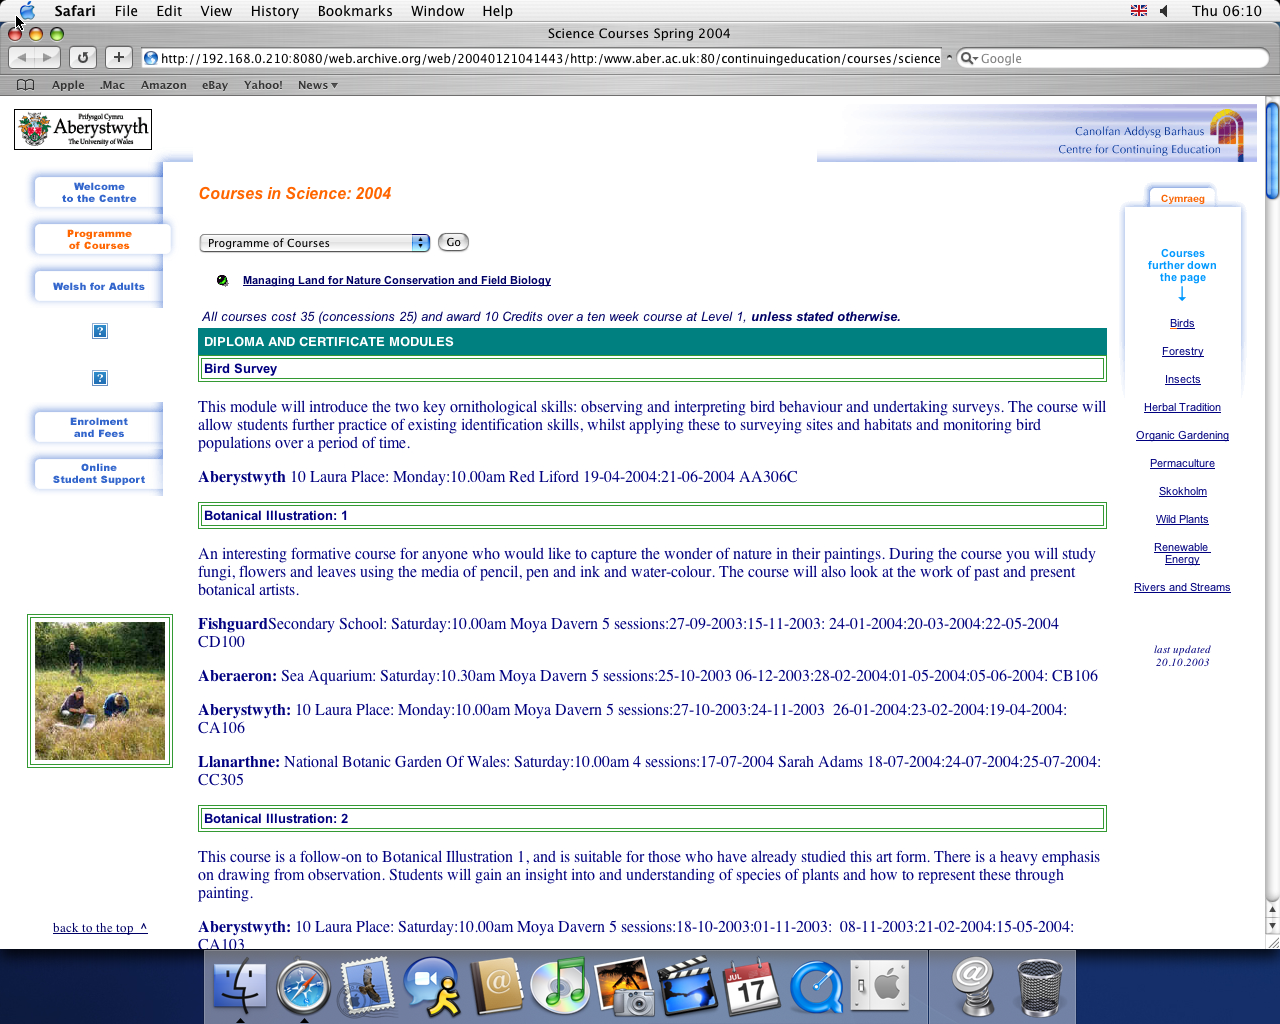 OS X 10.3 PPC with Safari 1.1 displaying a page from University of Aberystwyth archived at January 21, 2004 at 04:14:43